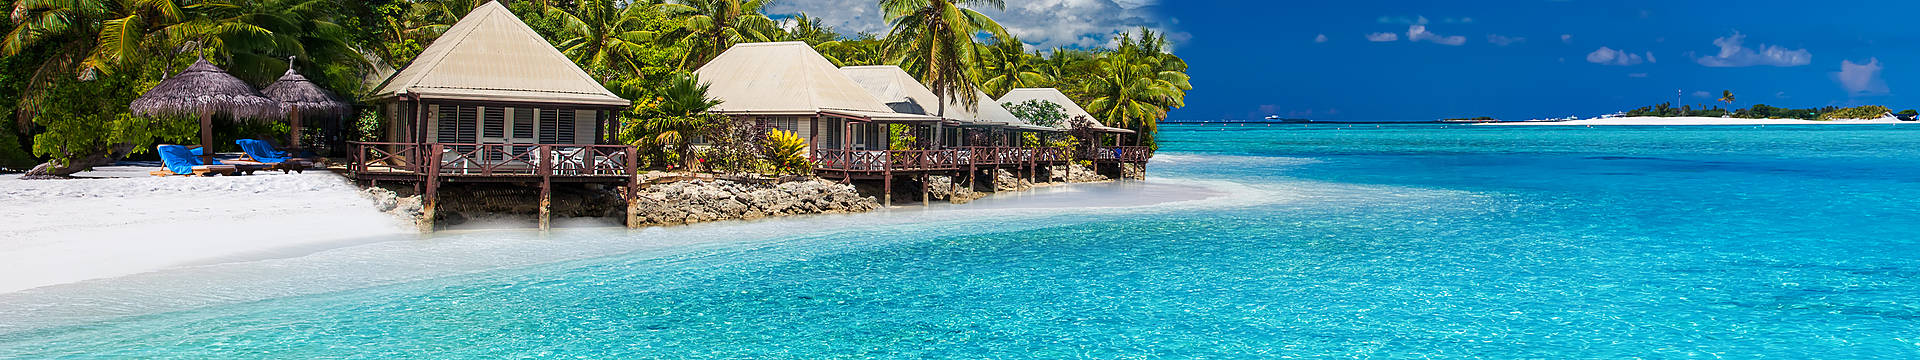 Travel to Fiji